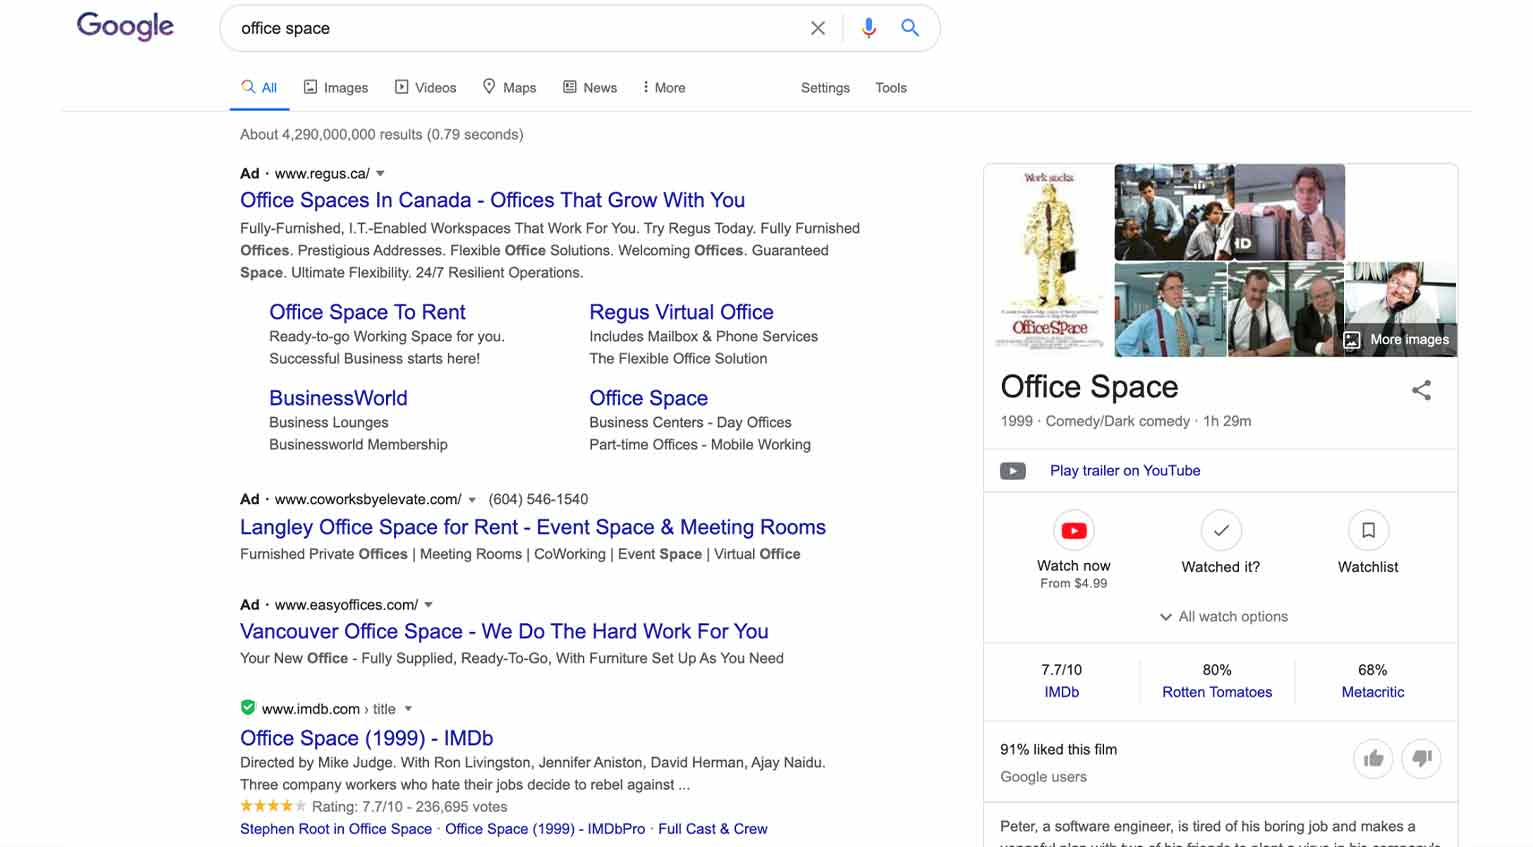 """When I search for """"office space,"""" am I looking for a commercial lease or where to buy the movie of the same name?"""